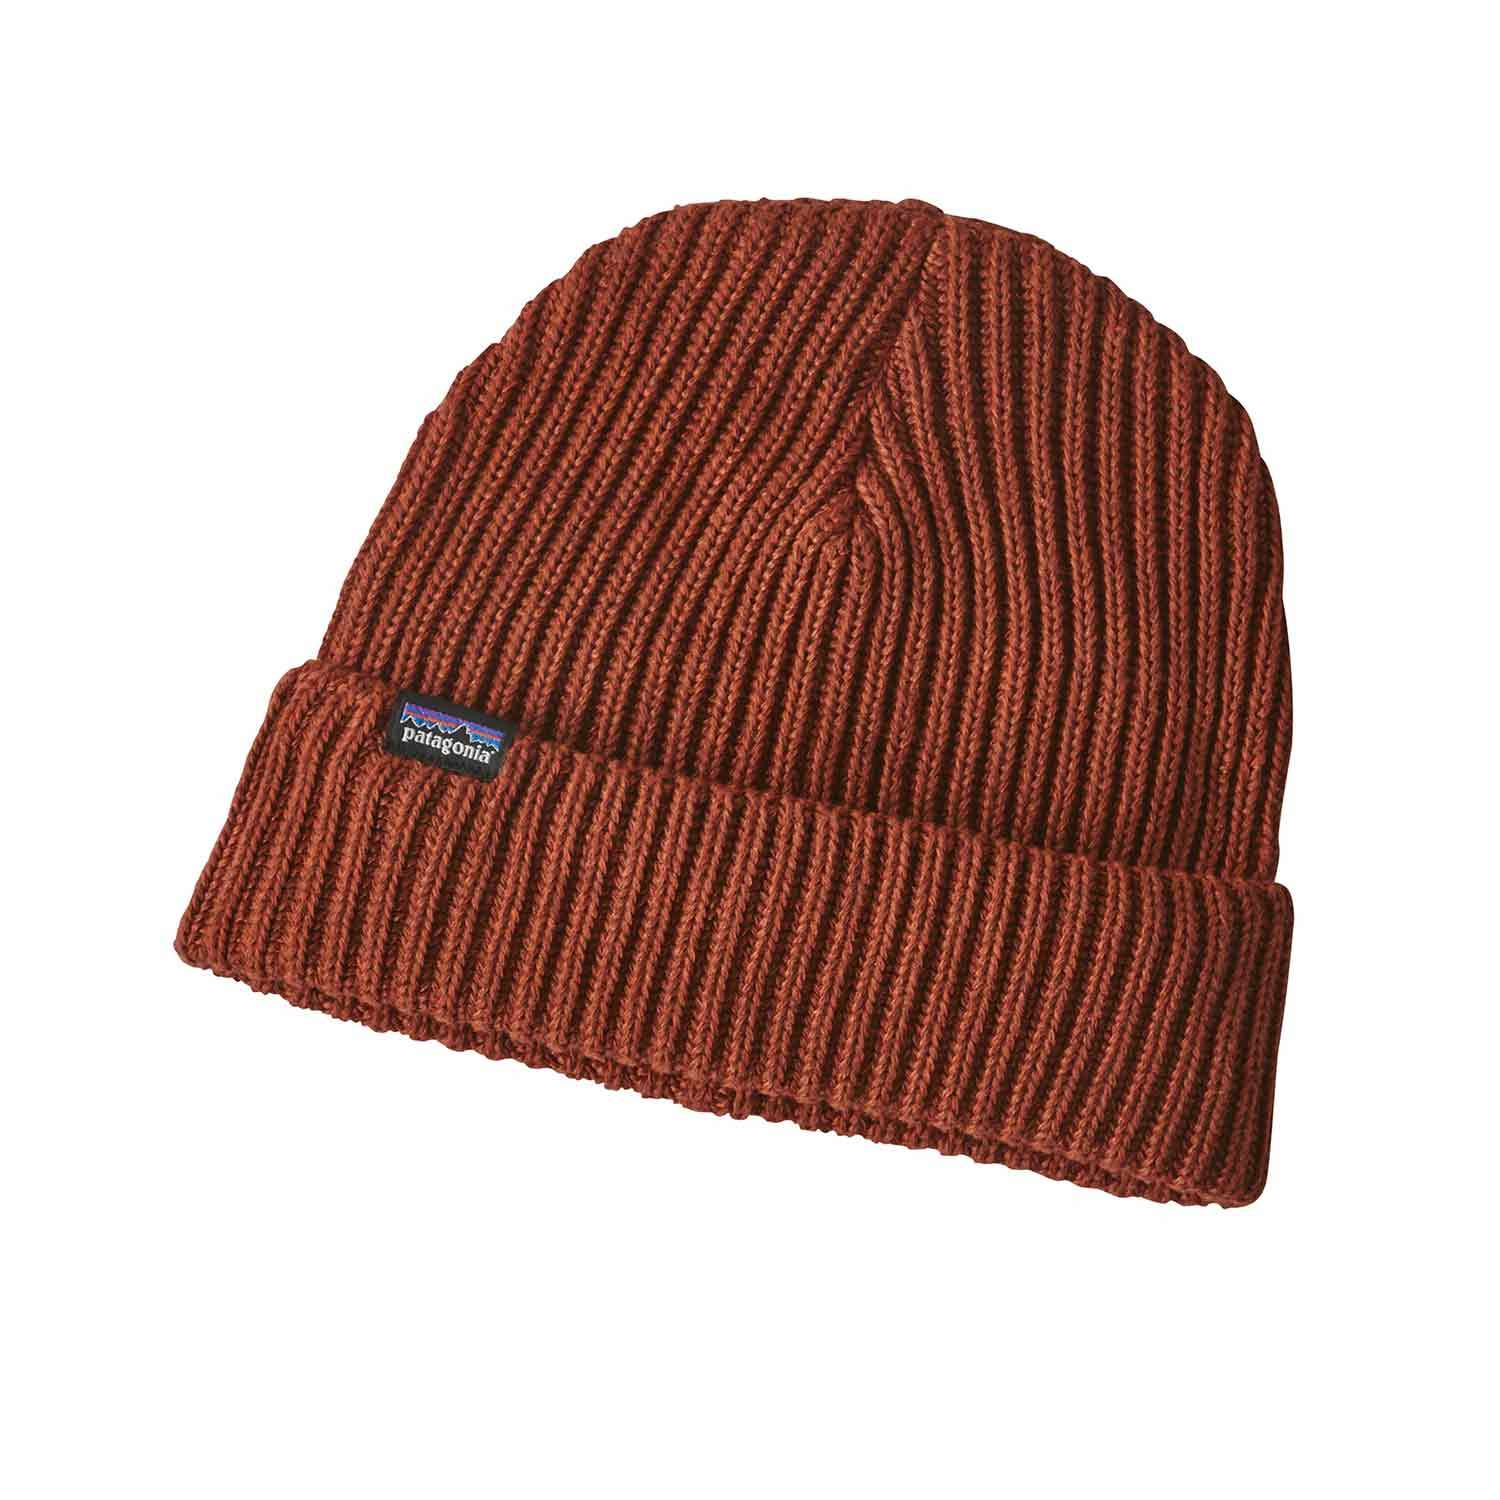 ce1447327f7 PATAGONIA Men s Fishermans Rolled Beanie